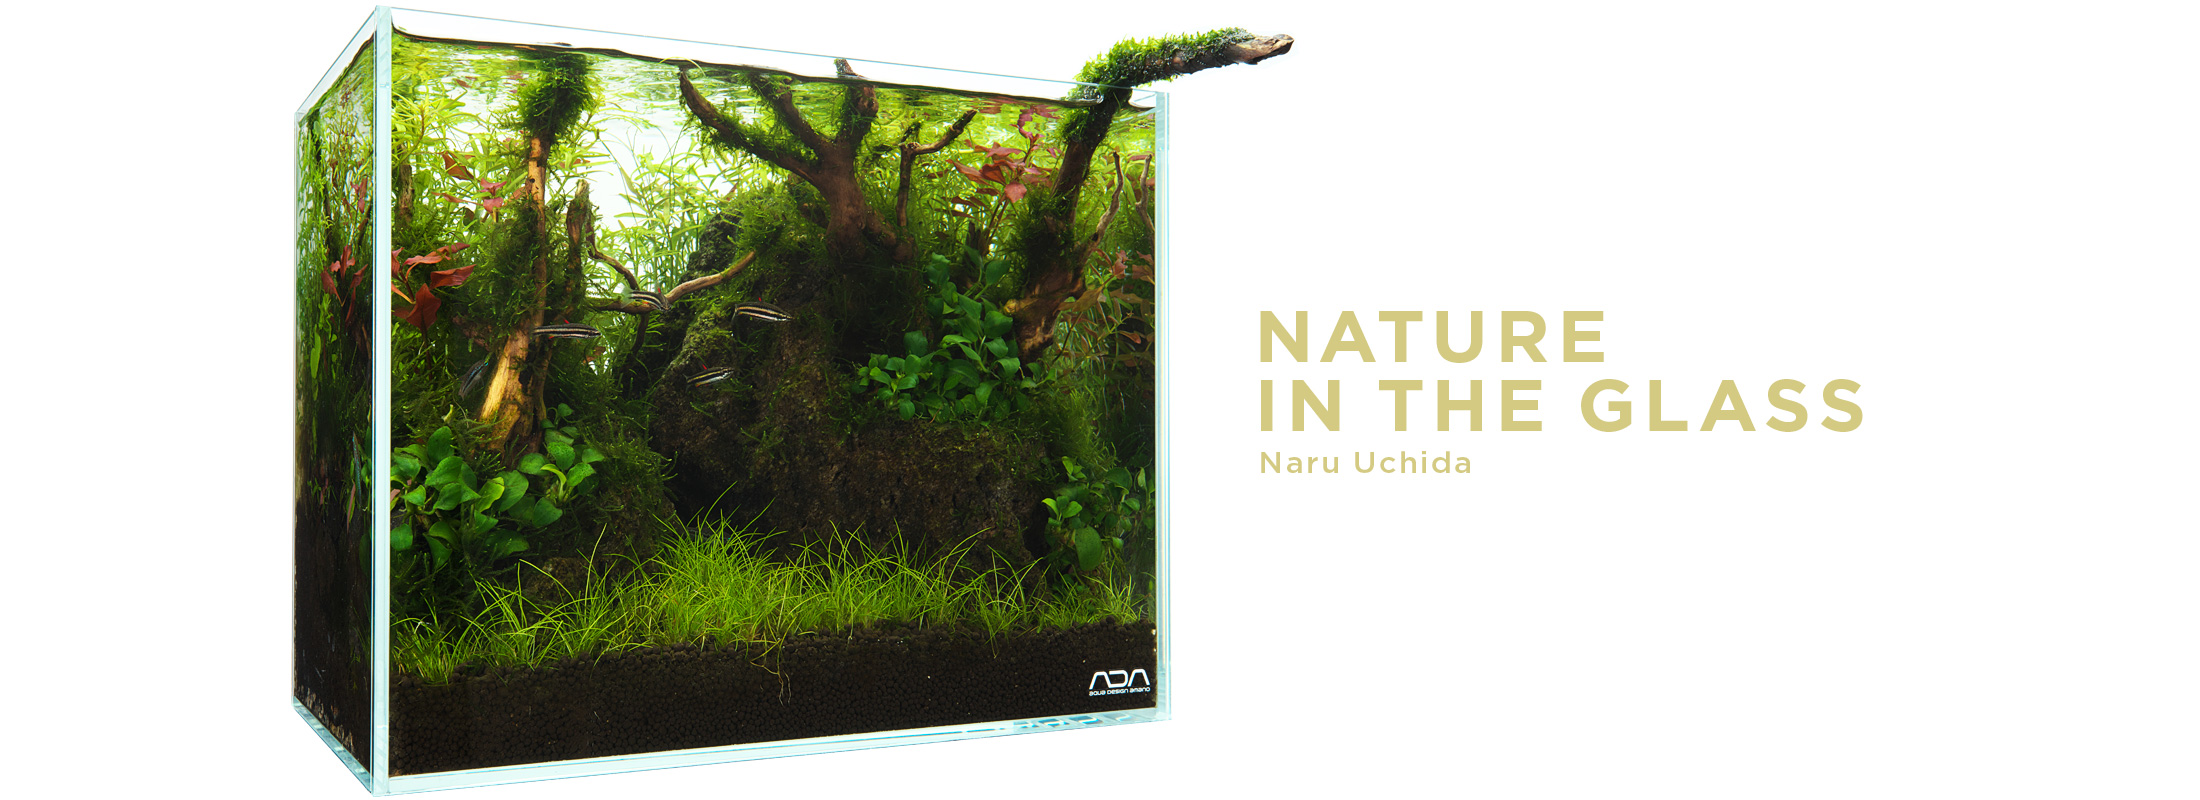 NATURE IN THE GLASS 'A hideout for fish'